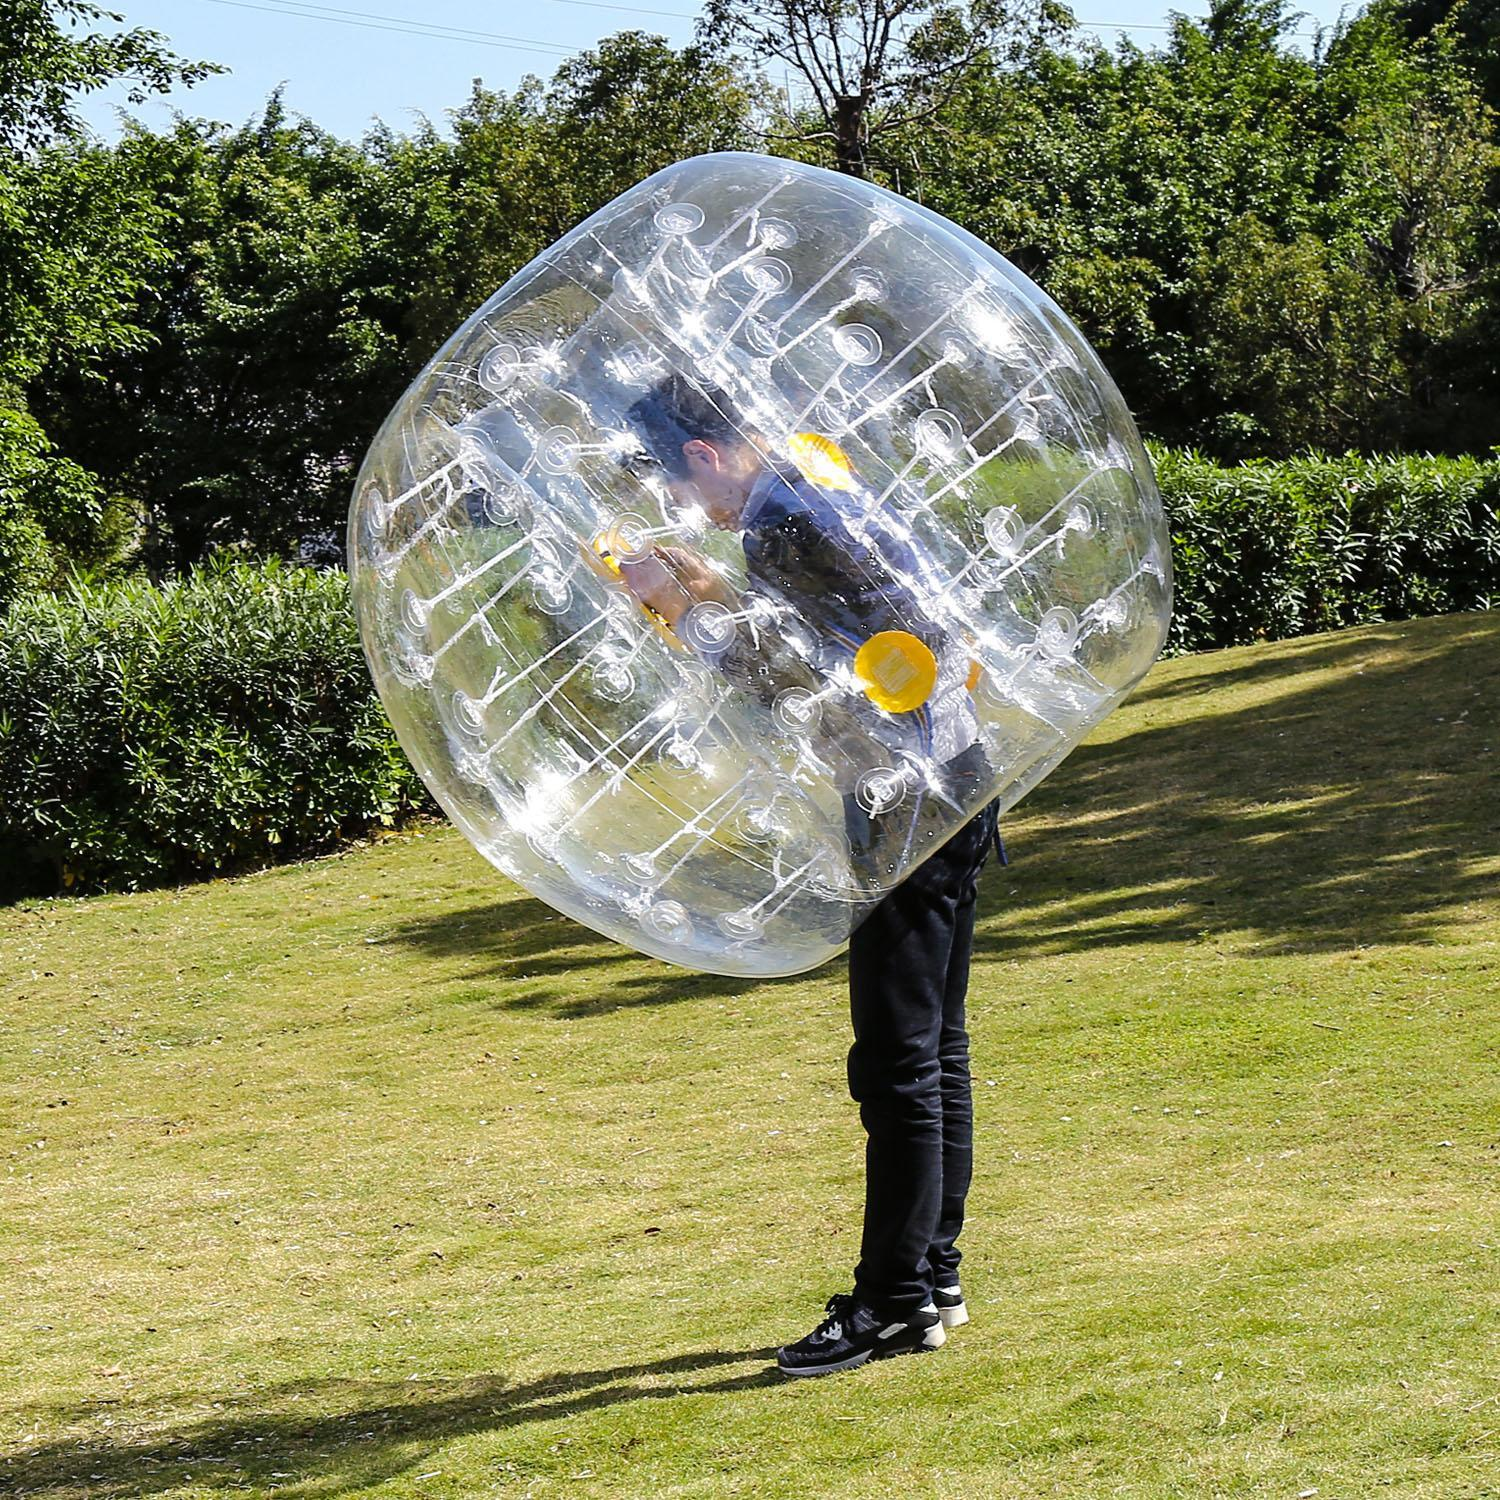 Holiday Clearance! Hascon Inflatable Bumper Ball Human Knocker Ball Bubble Soccer Football... by